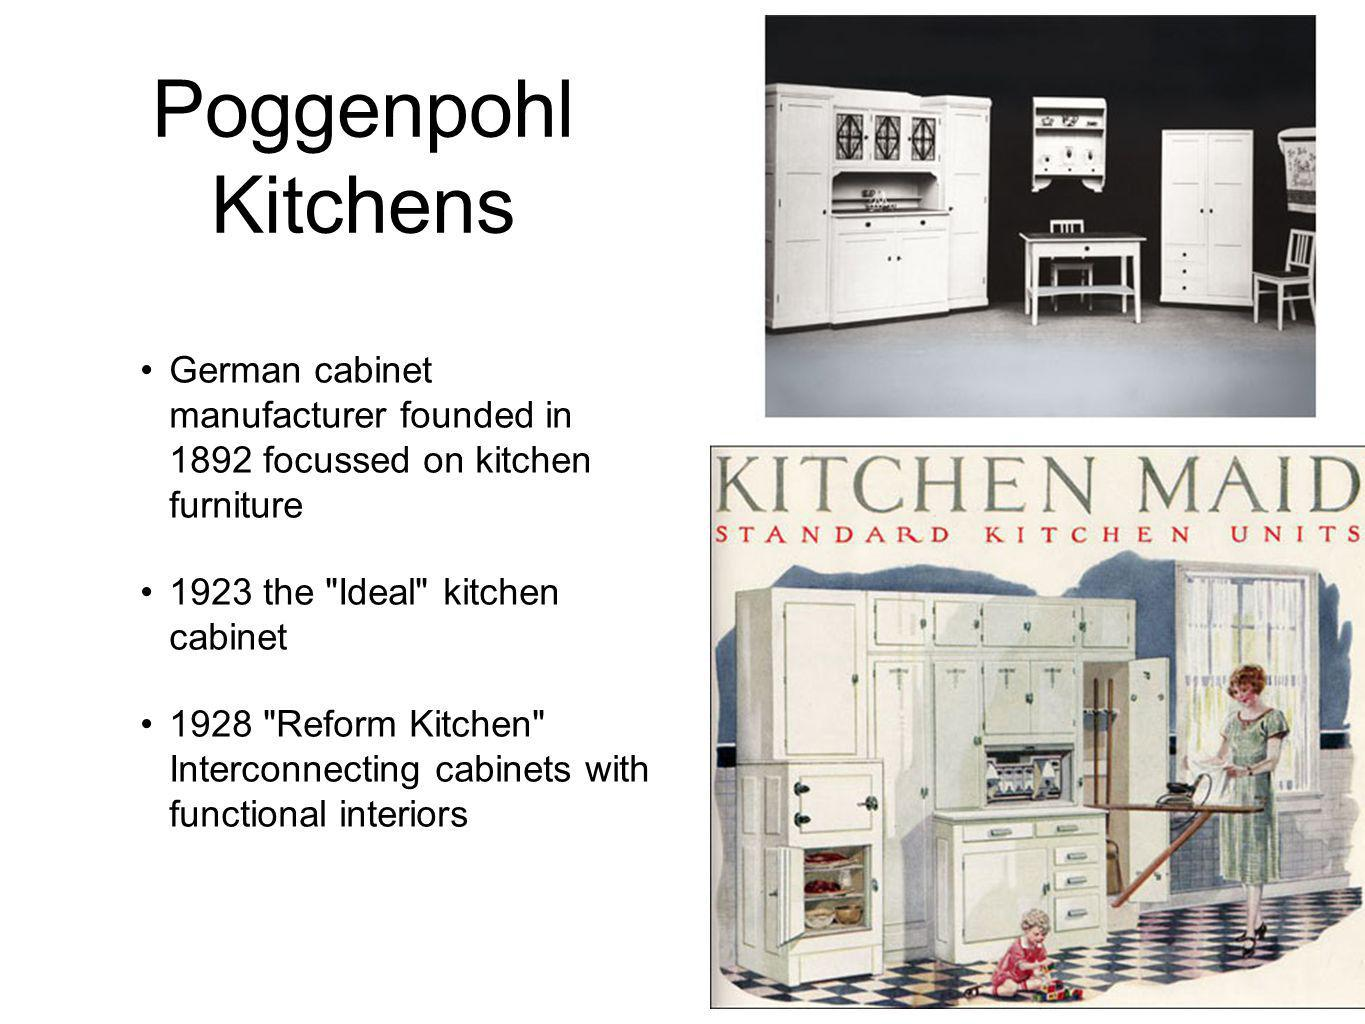 Poggenpohl Kitchens German cabinet manufacturer founded in 1892 focussed on kitchen furniture 1923 the Ideal kitchen cabinet 1928 Reform Kitchen Interconnecting cabinets with functional interiors